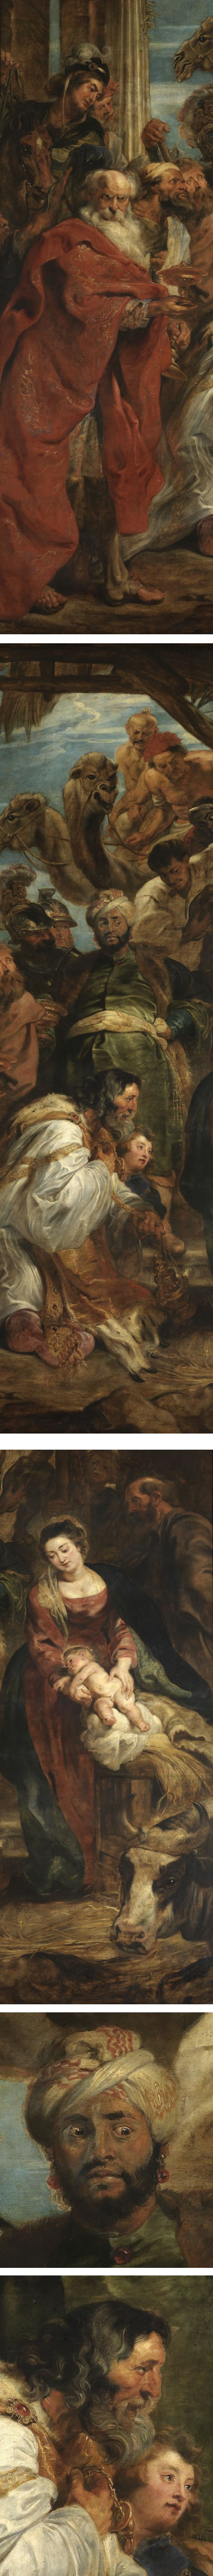 Adoration of the Magi, Peter Paul Rubens (details)